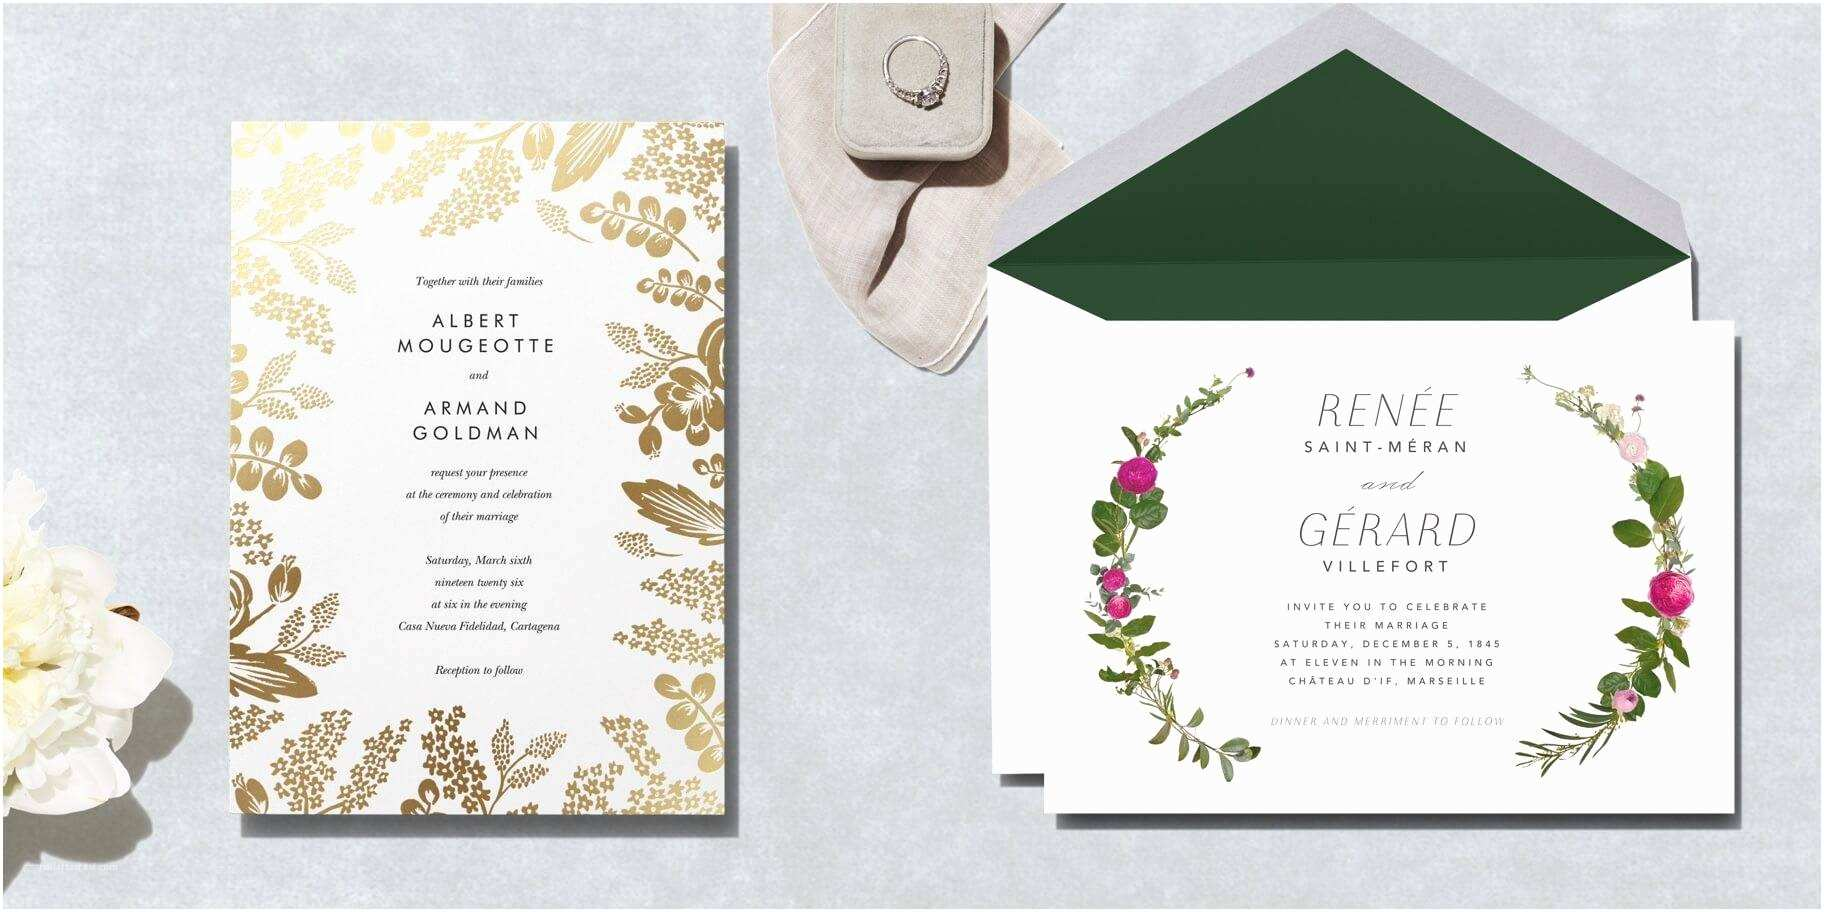 Paperless Post Free Wedding Invitations Line Invitations and Cards Custom Paper Designs